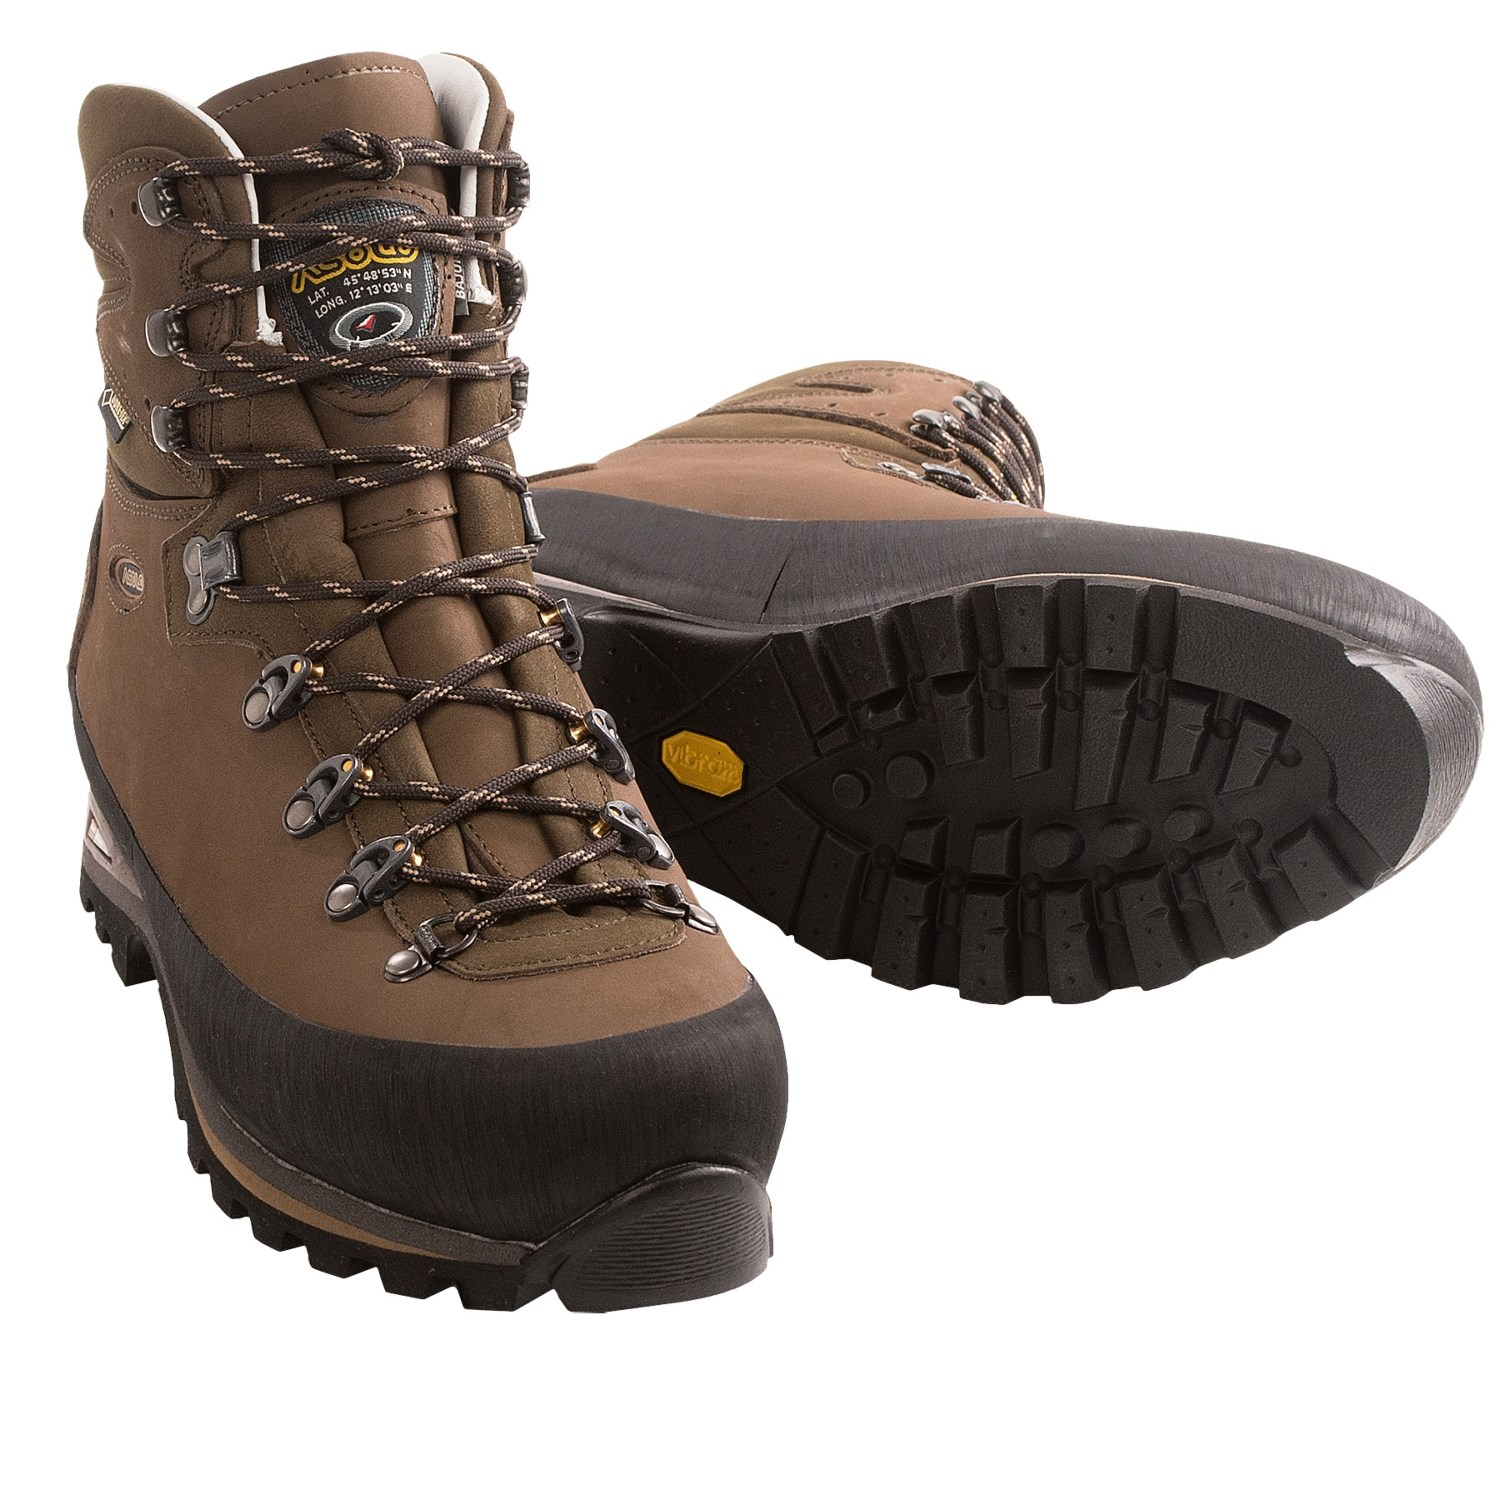 Mens Outdoor Boots h9PkhV2U